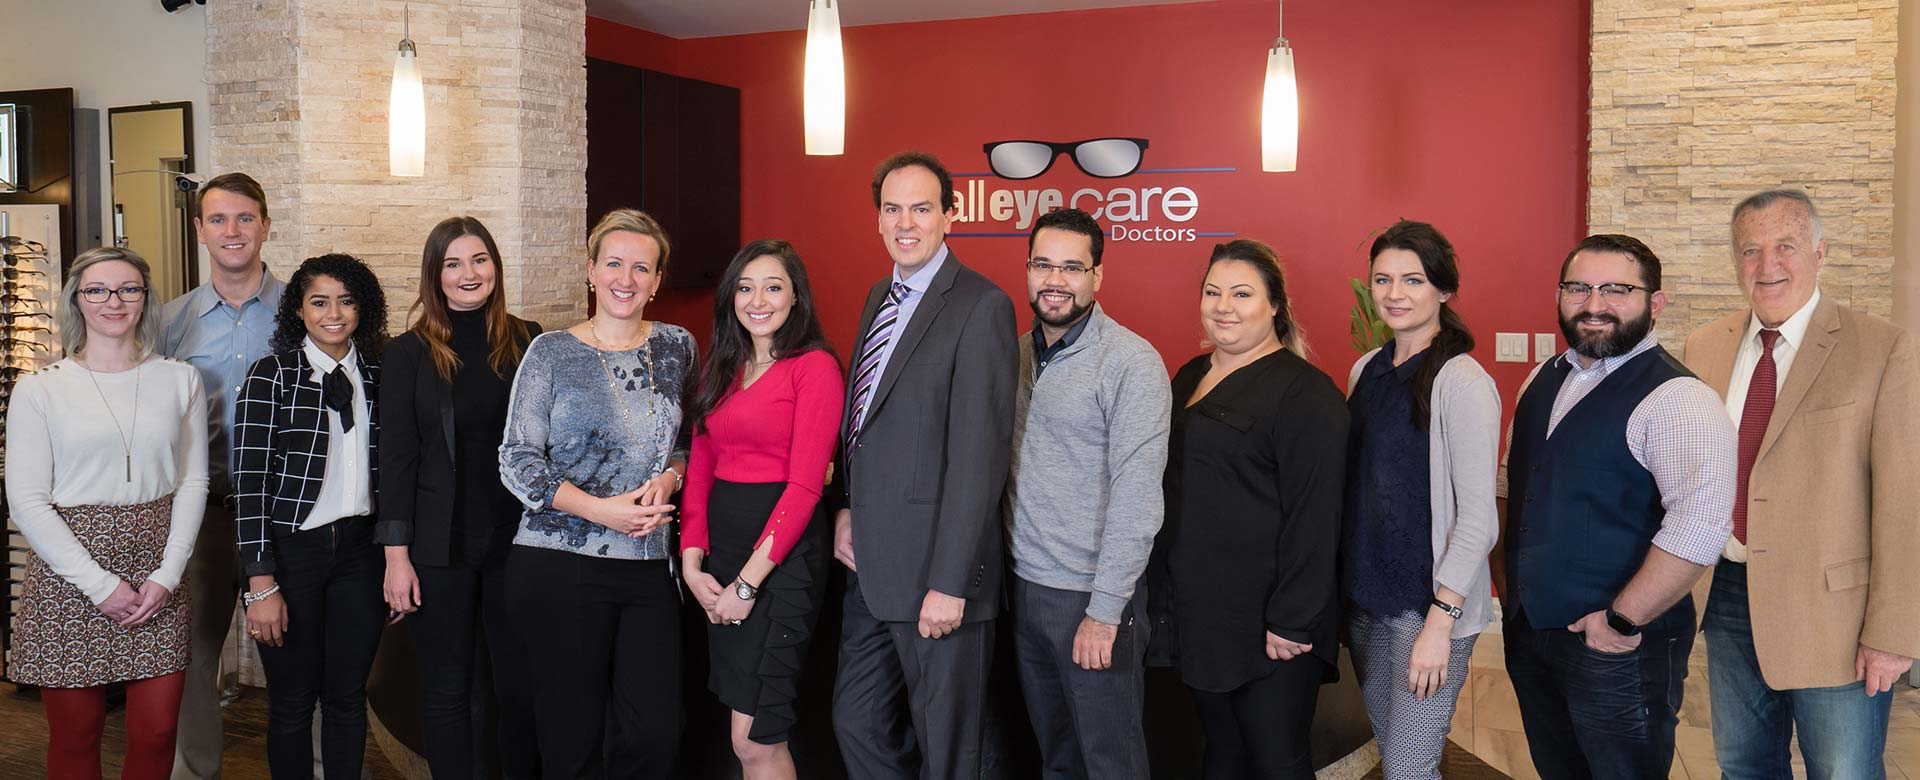 All Eye Care Doctors Medford Cambridge Group Shot Staff